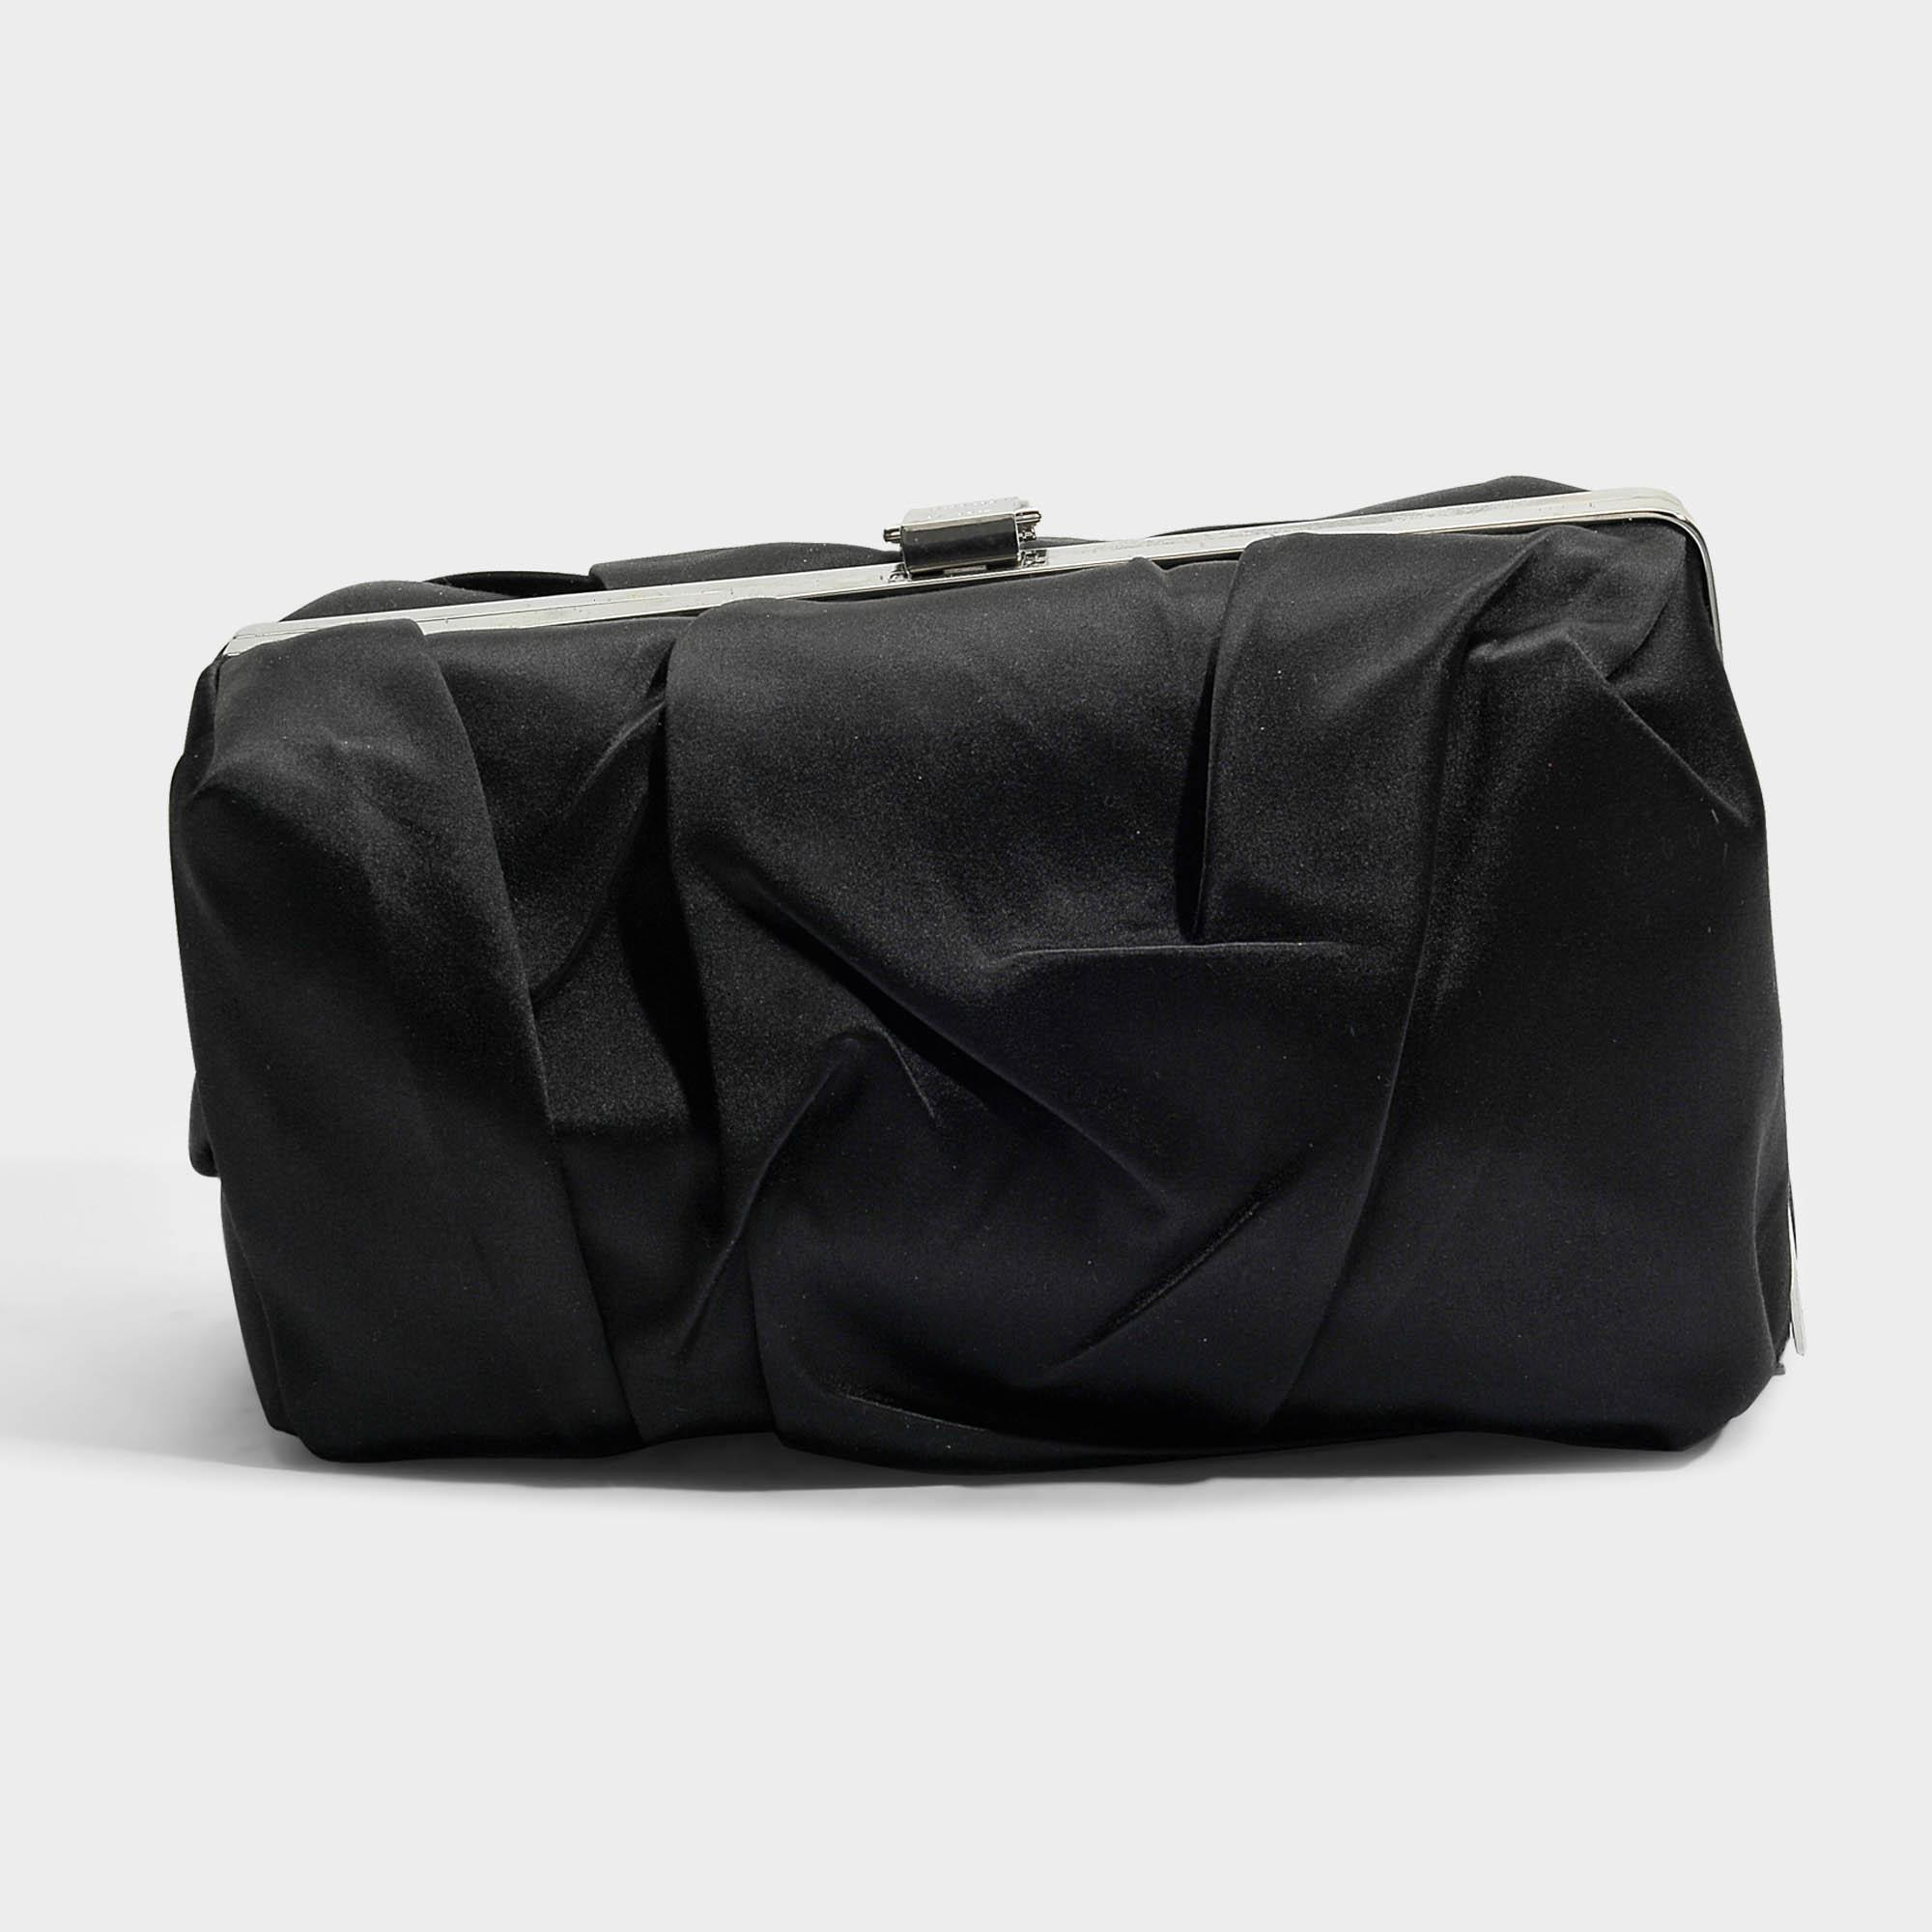 Asymmetrical Frame Clutch in Black Crinkled Satin Proenza Schouler